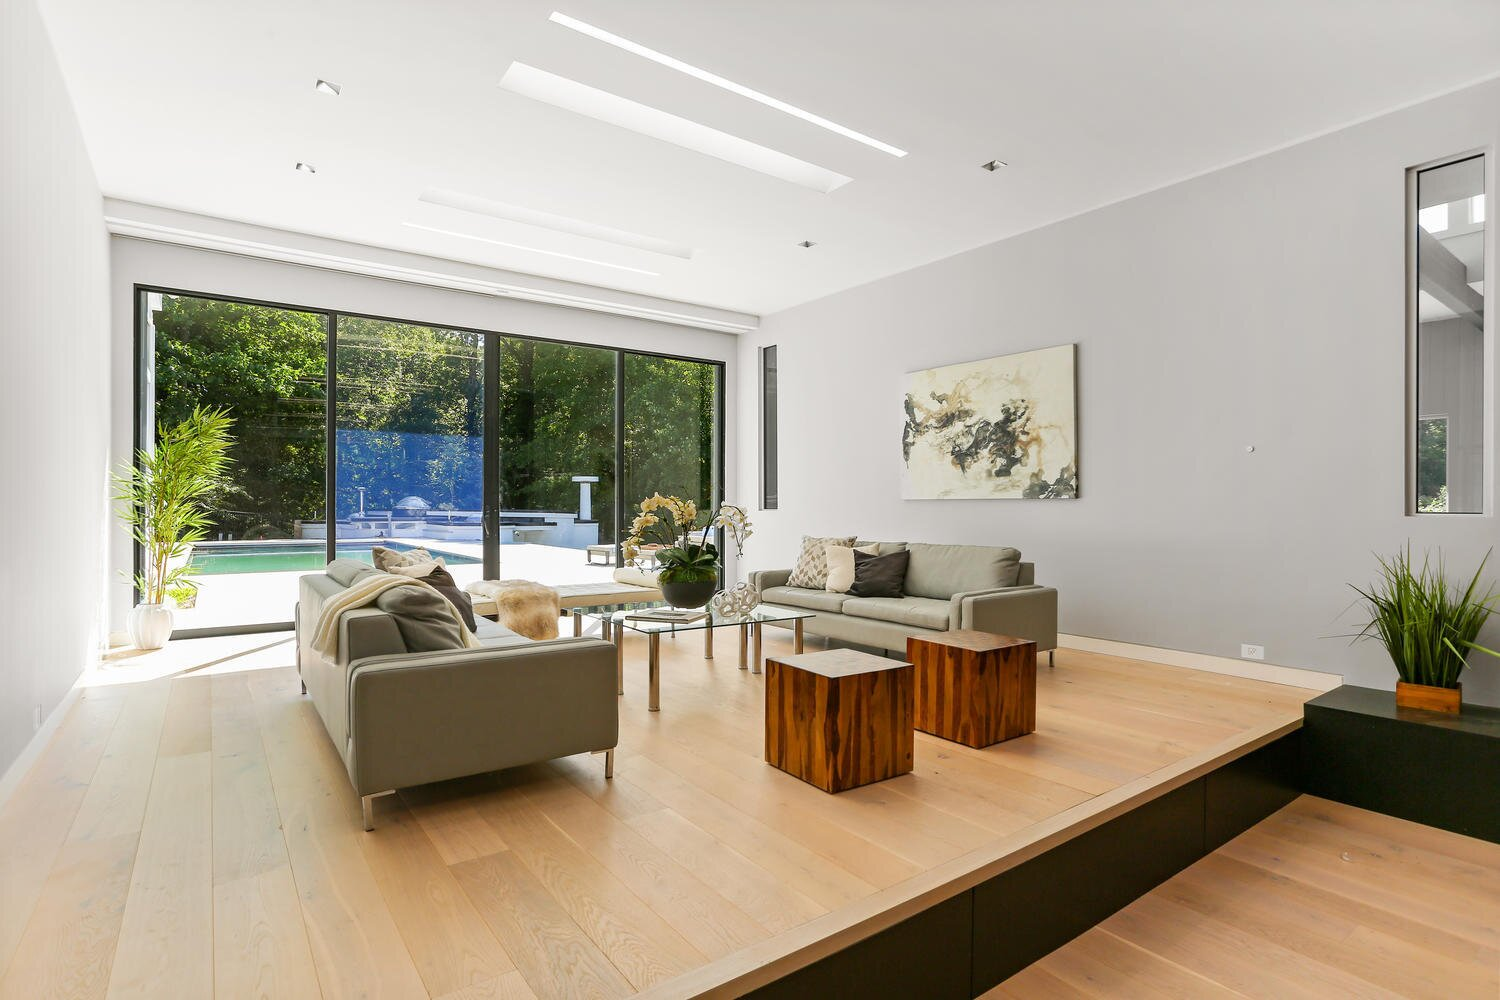 Modern home with Living Room, Ceiling Lighting, Two-Sided Fireplace, and Gas Burning Fireplace. Living room  Photo 10 of A Gut Renovated MidCentury Modern Green Energy Home for Luxury Winter Living for $4.65m